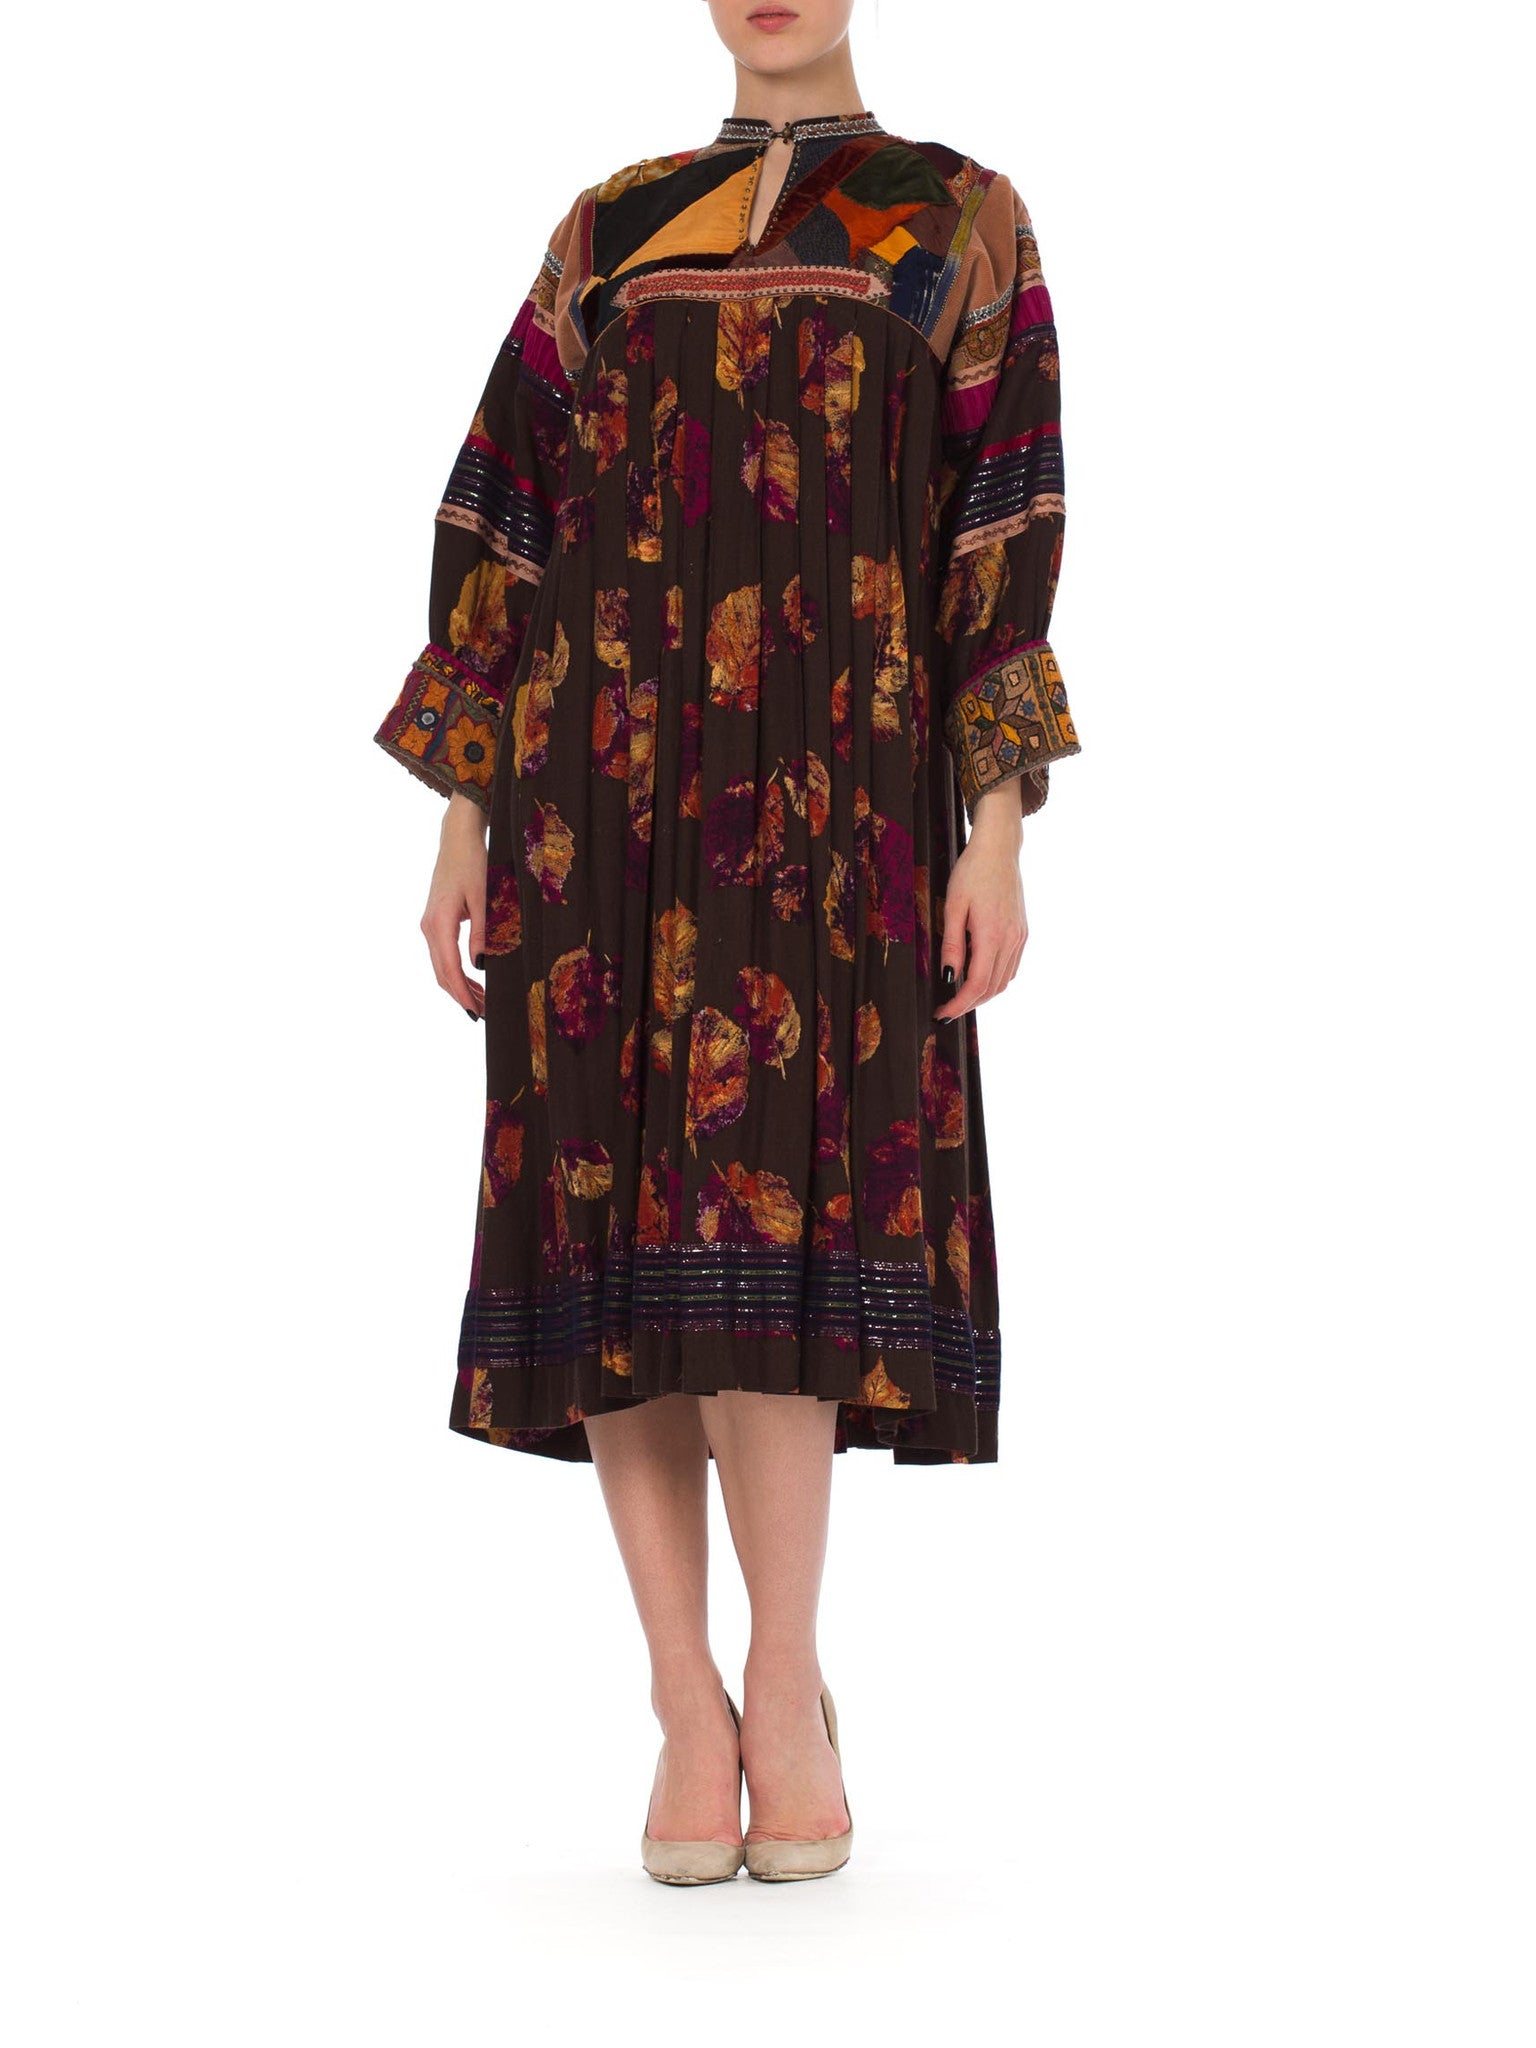 1970s Boho Ethnic Embroidered Patchwork Pleated Caftan  Dress